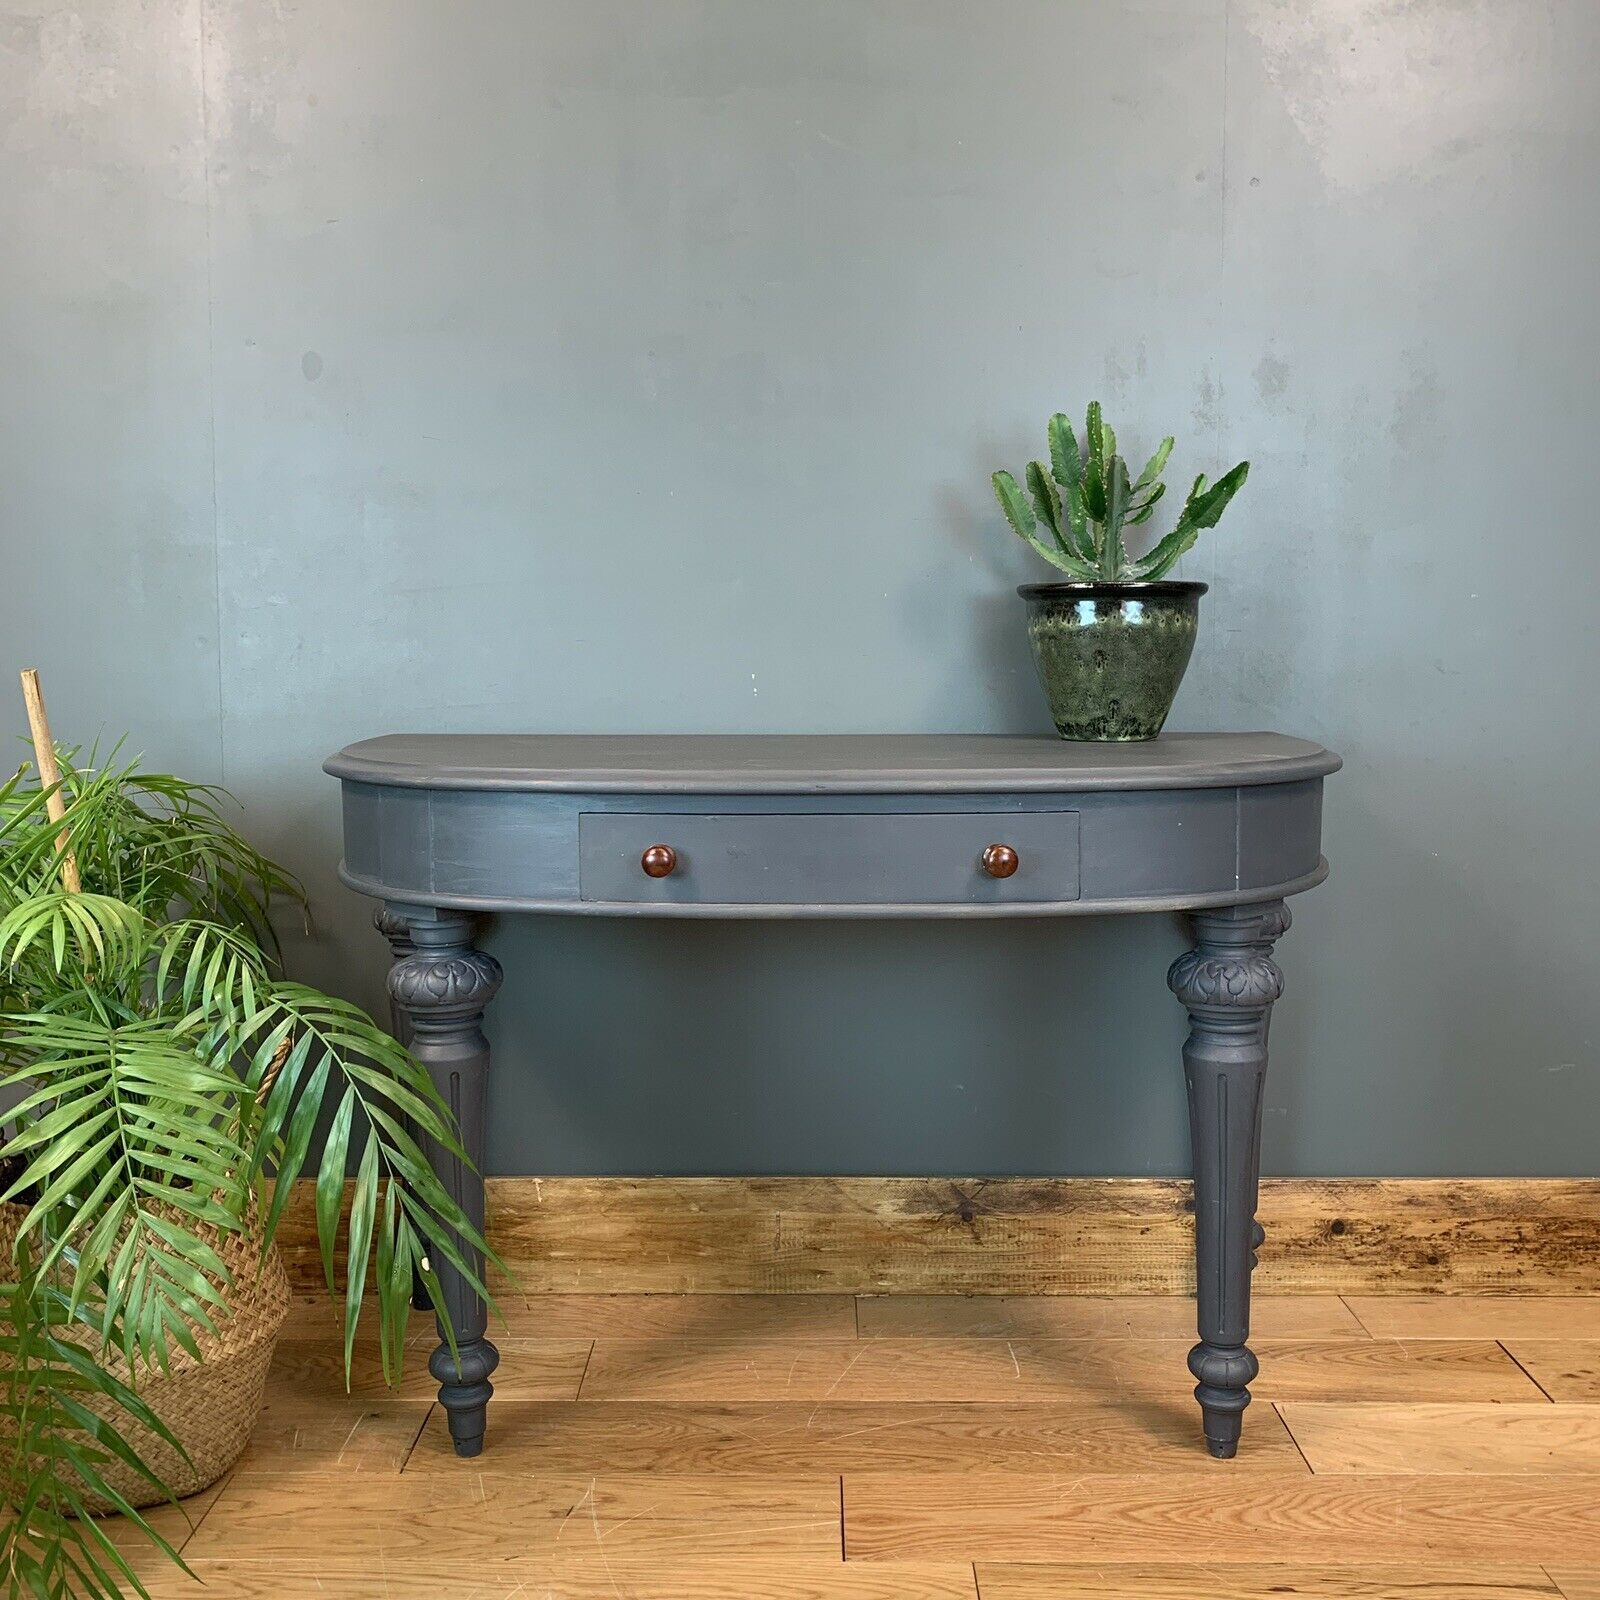 Why furniture upcycling is more than just a trend - Vinterior